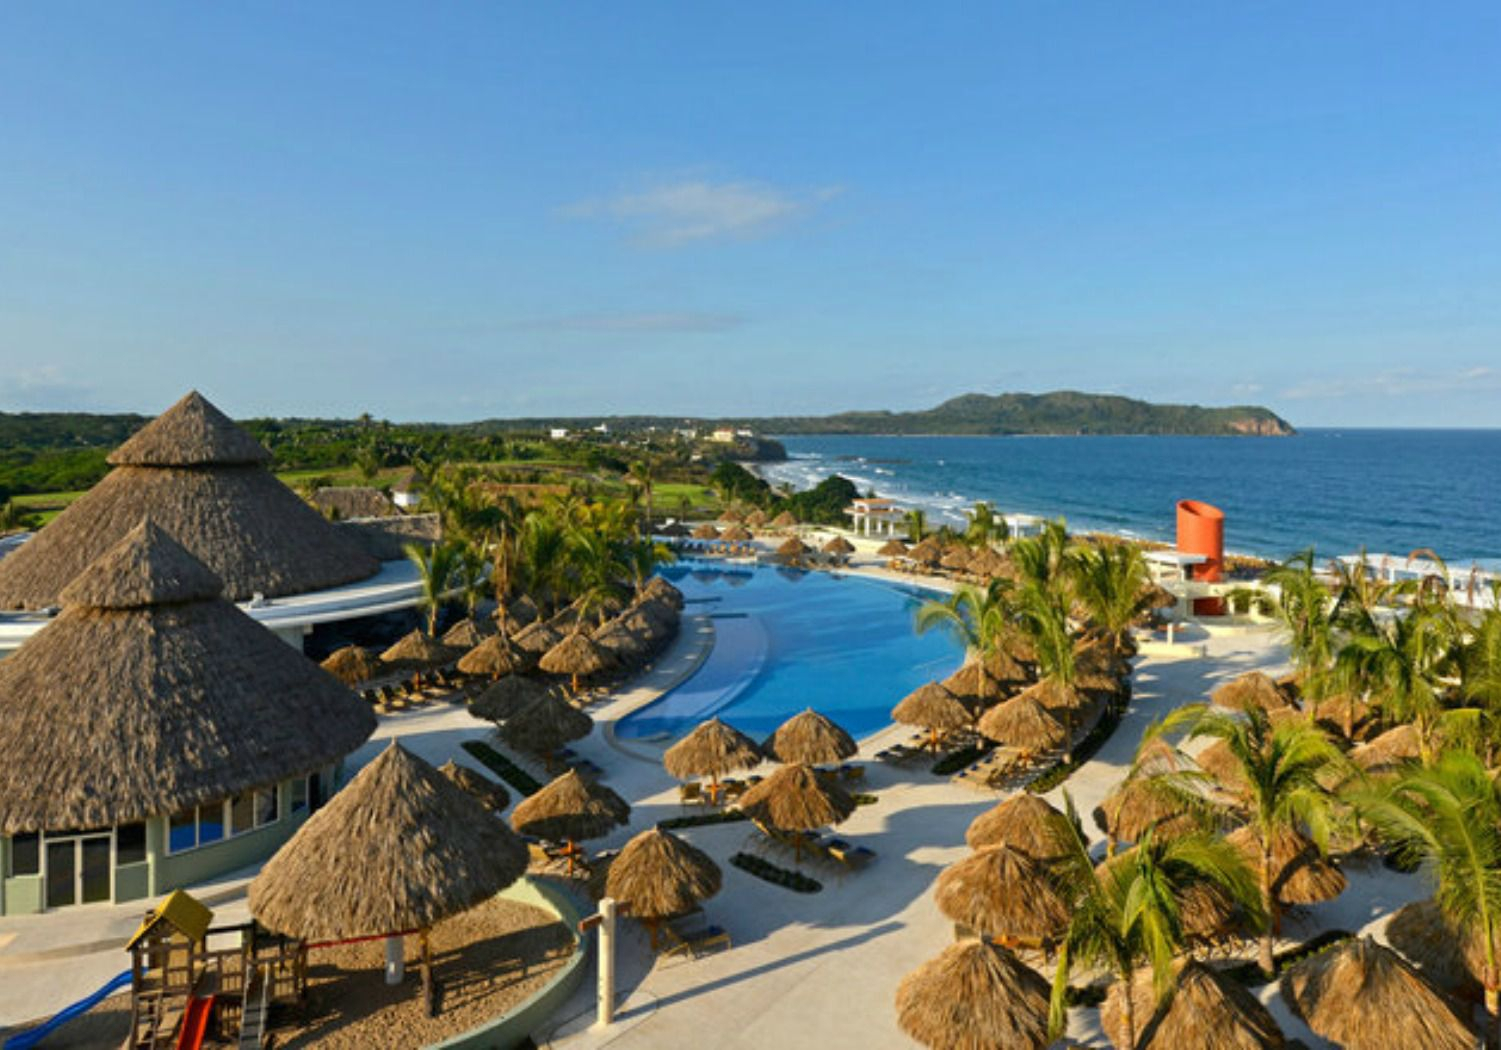 5 Best Allinclusive Resorts For Families